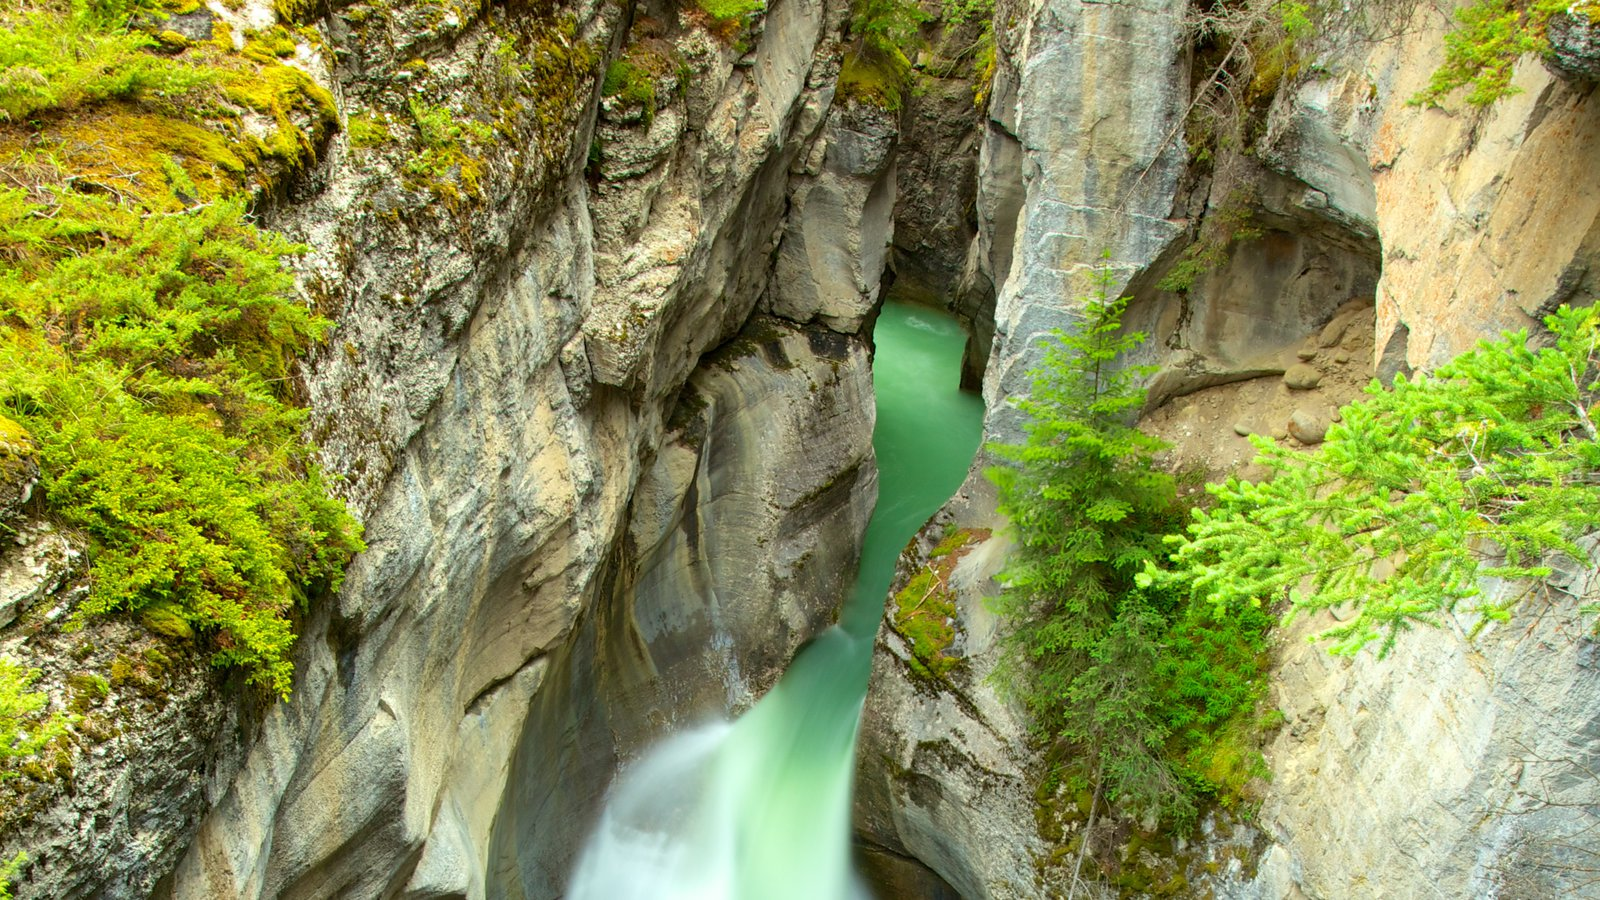 Maligne Canyon which includes landscape views, a gorge or canyon and a river or creek